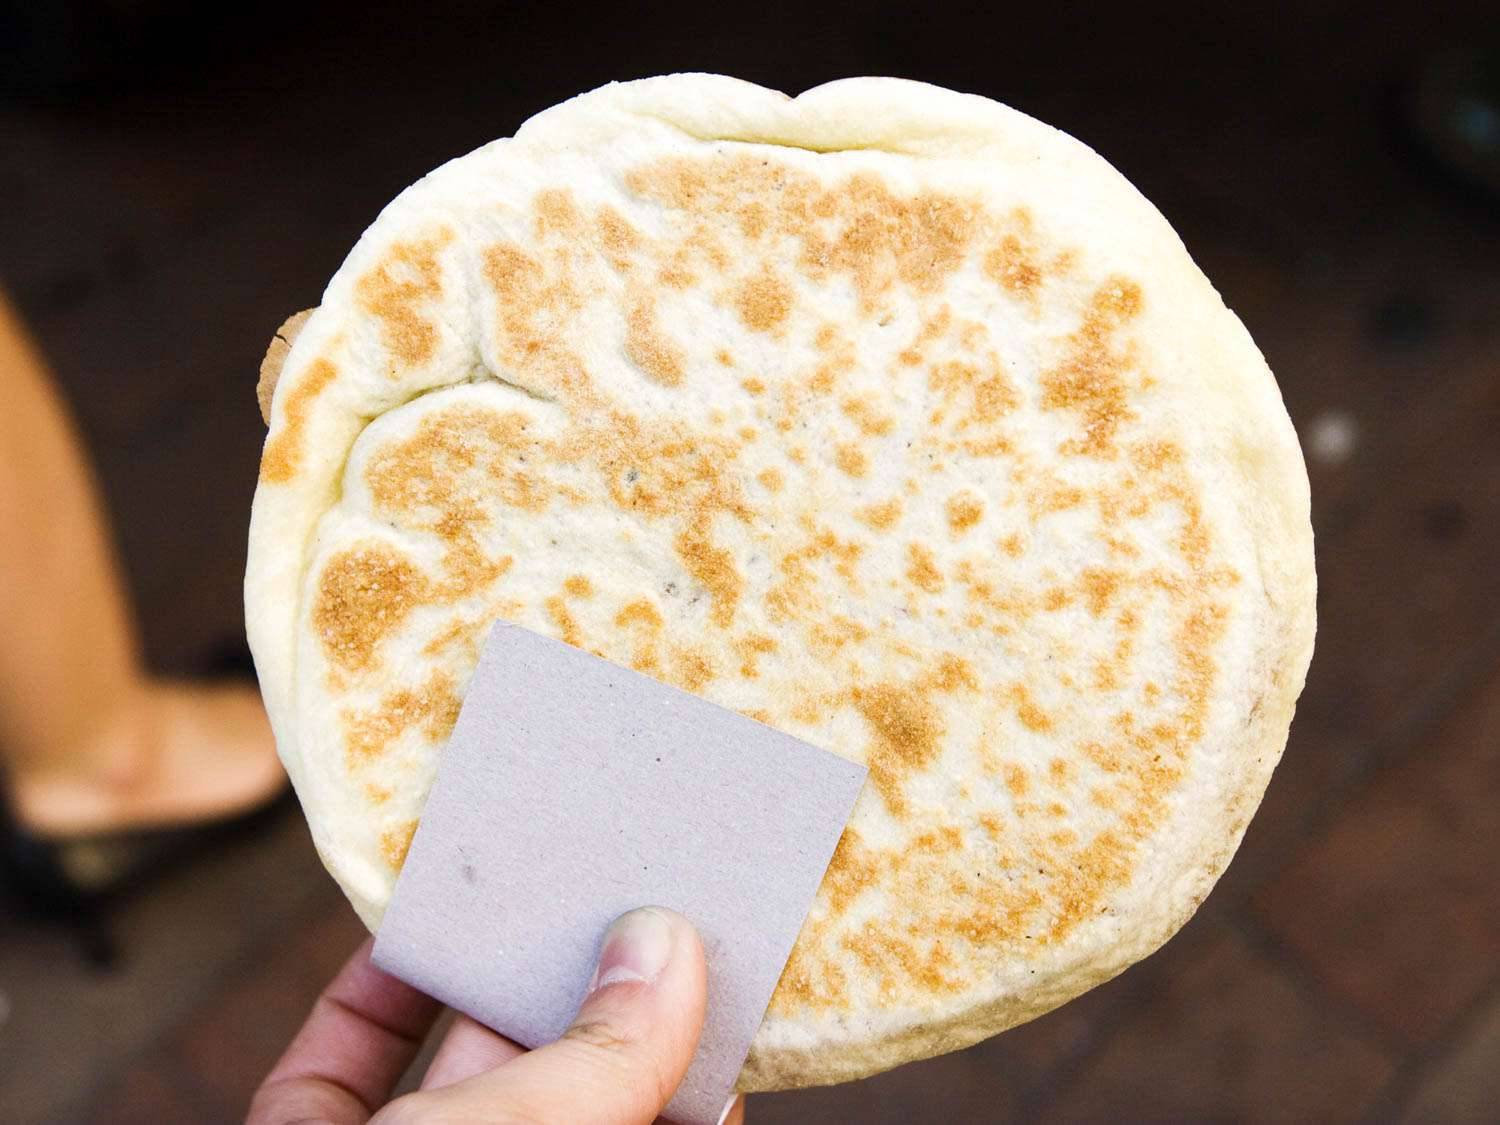 Someone holding a teok, a Korean pancake made from a sugary, yeasty wheat-based dough.